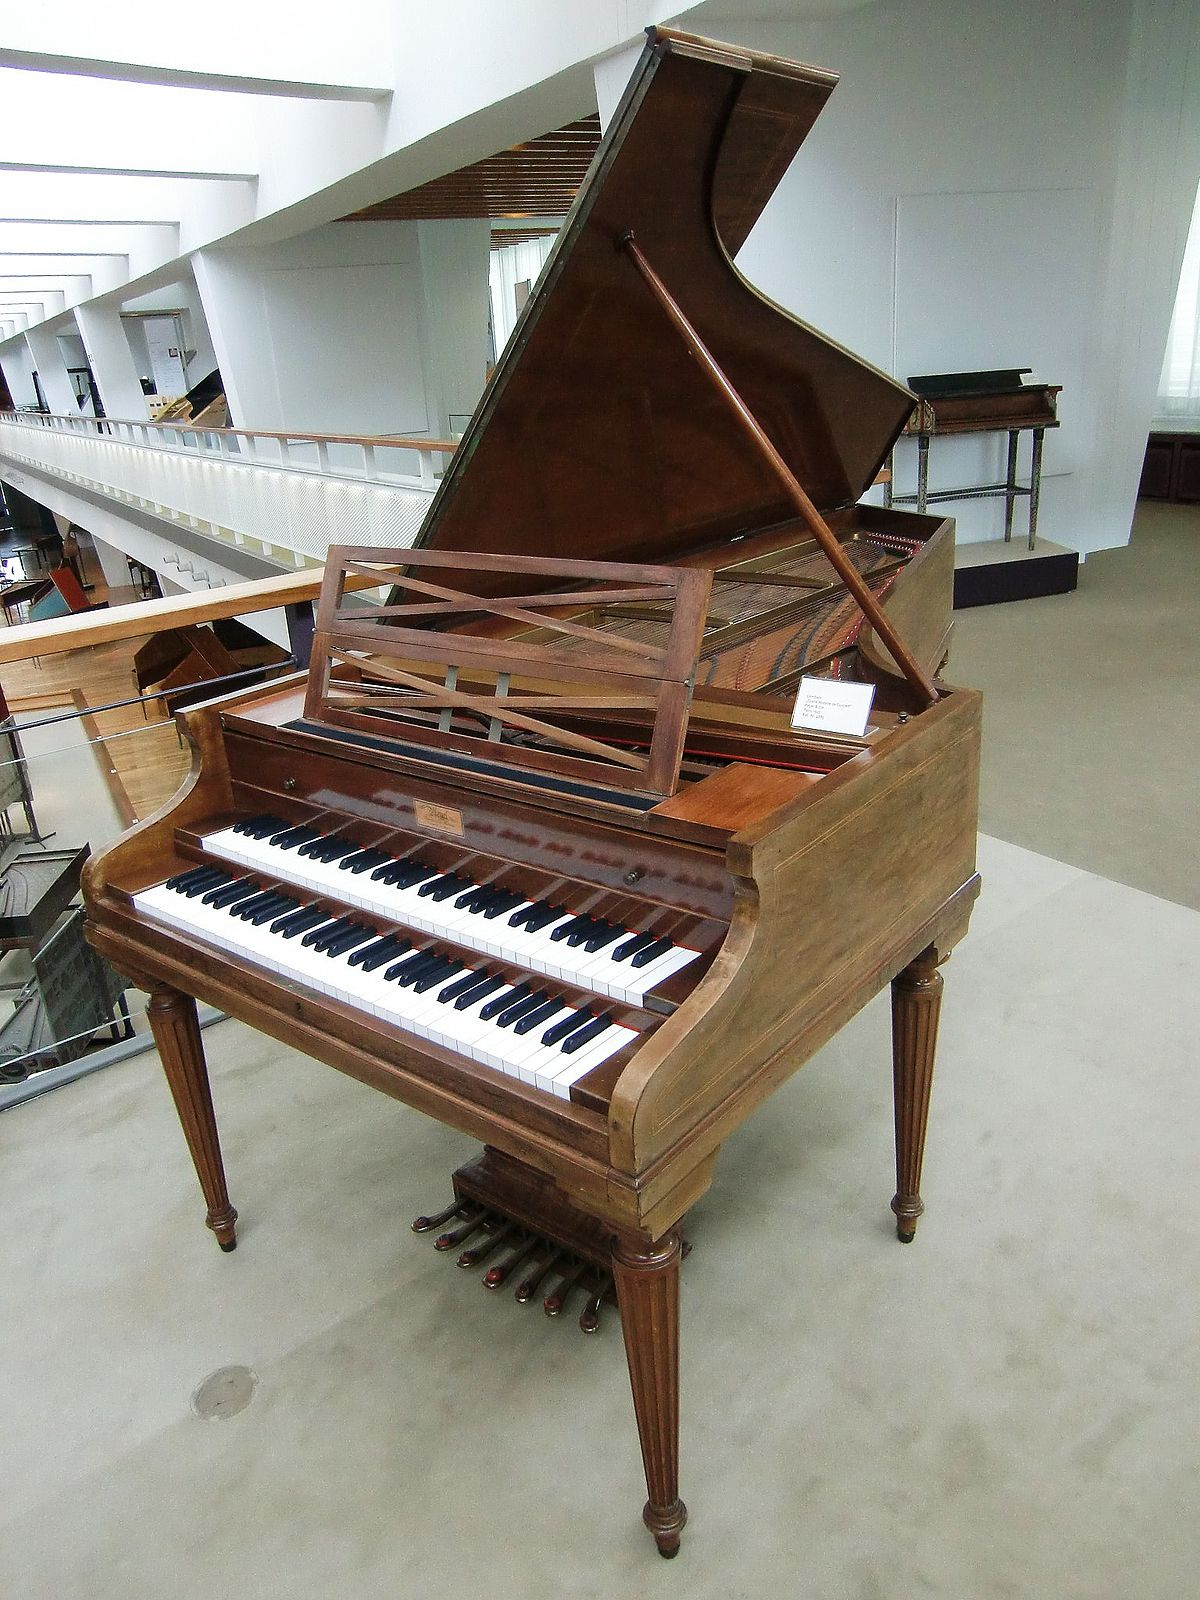 Contemporary harpsichord - Wikipedia